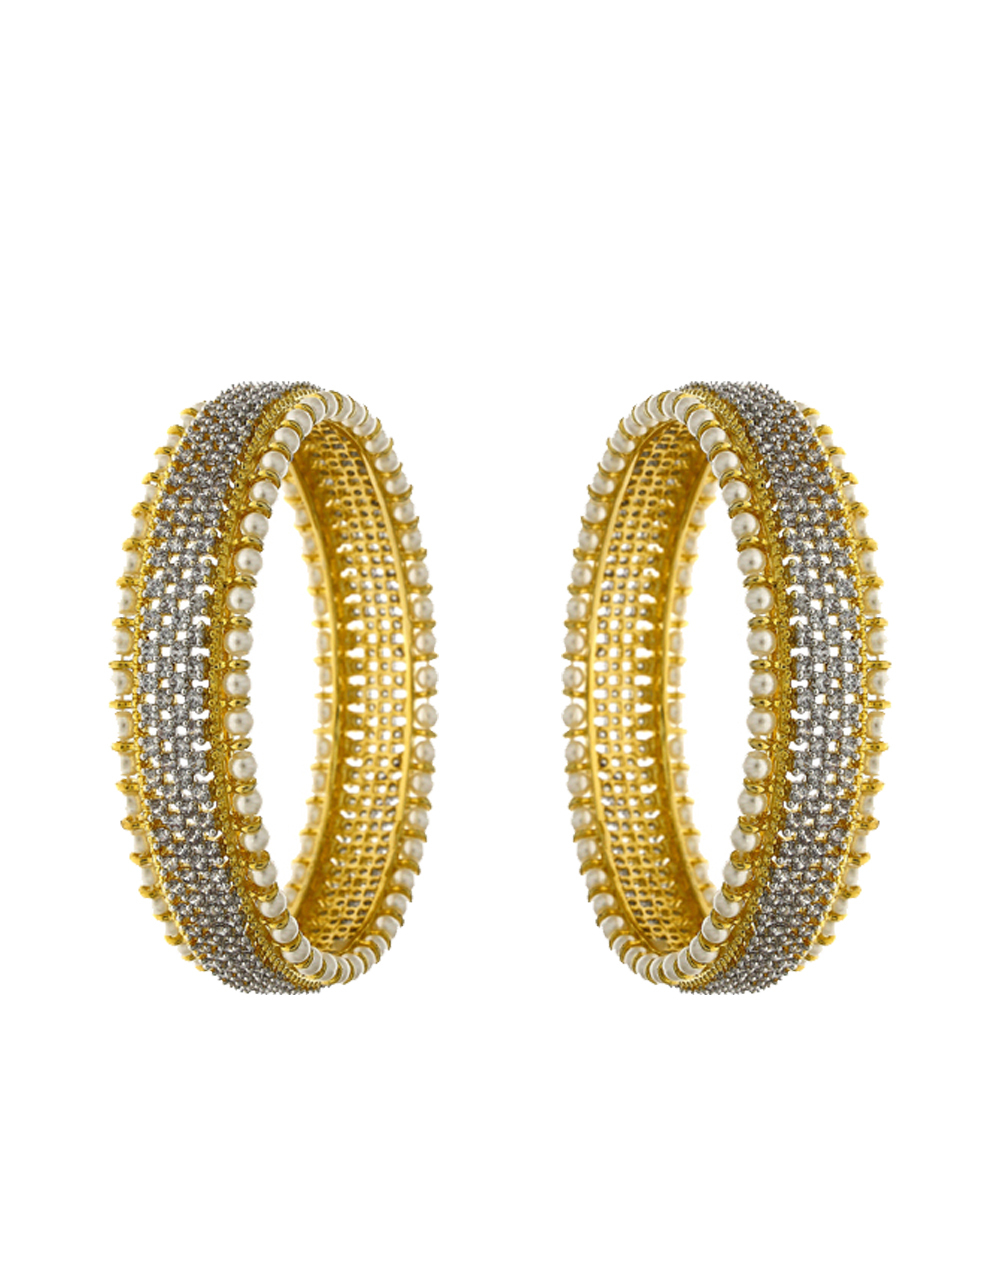 Dazzling White Stones Studded With Pearl Beads With Golden Matt Finishing Fancy Designer Bangles.